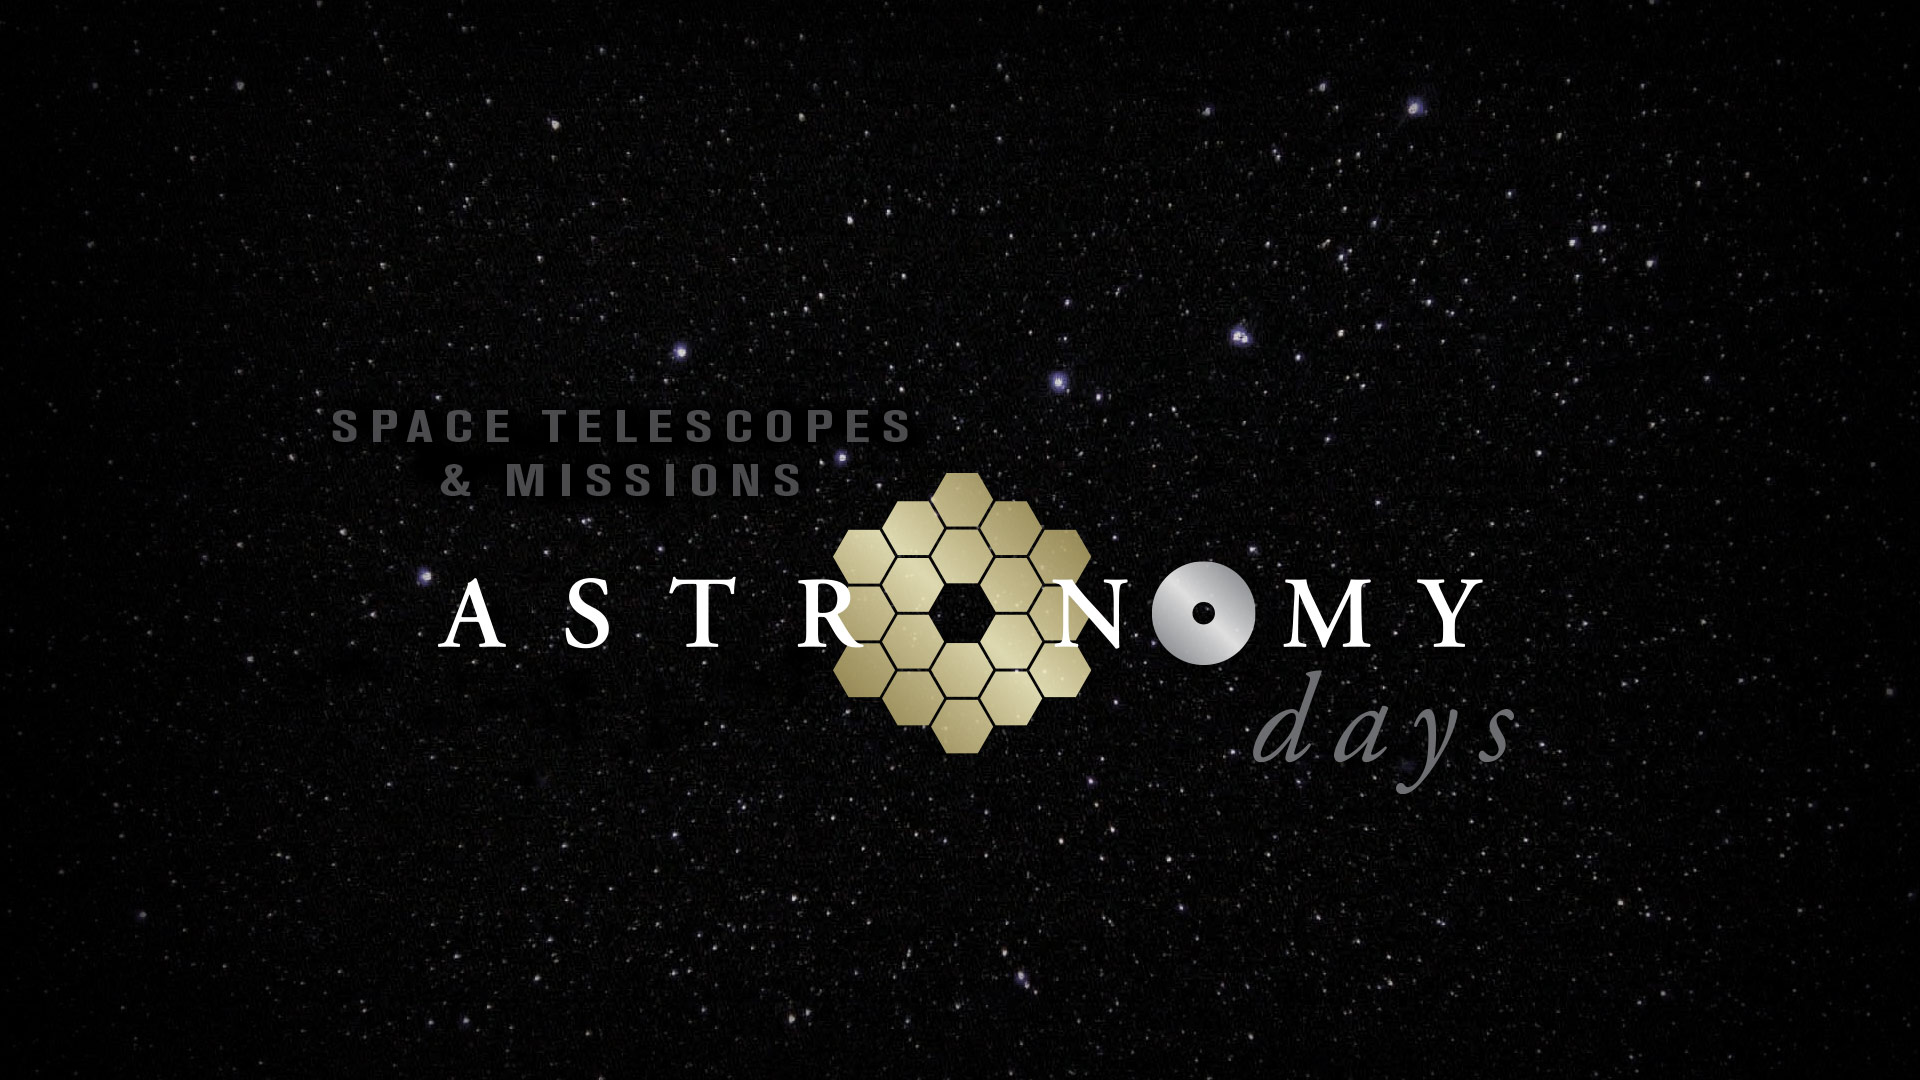 Astronomy Days: Space Telescopes & Missions; January 27 & 28